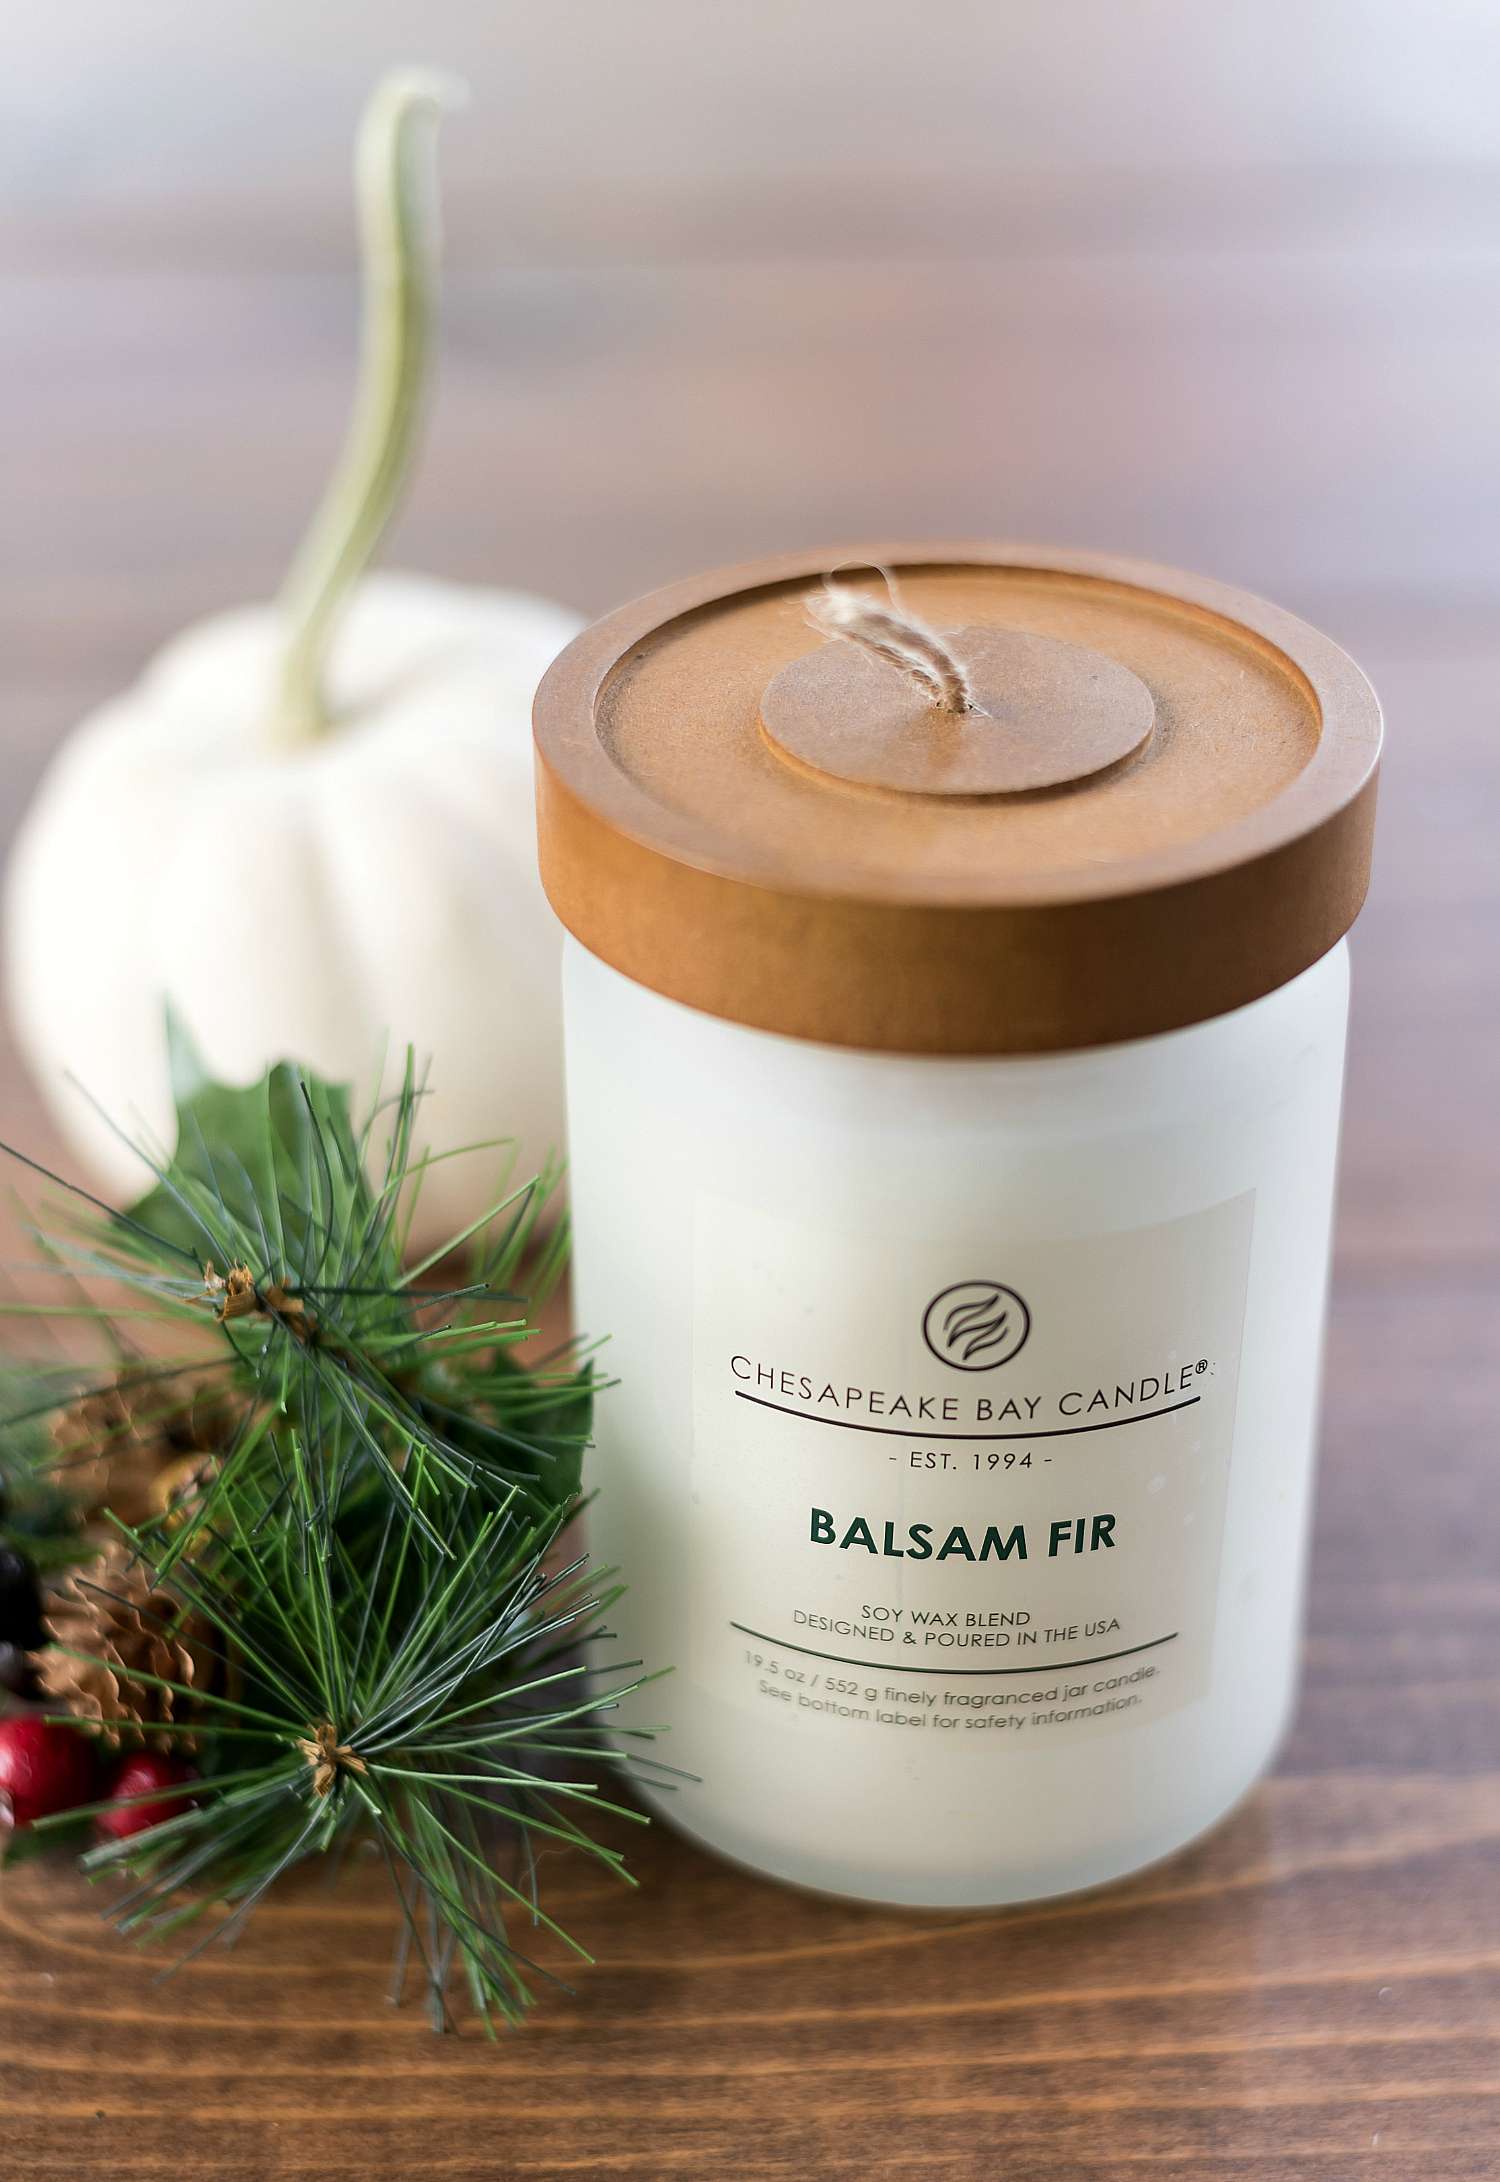 Balsam Fir Candle from Chesapeake Bay Candle Heritage Collection Fall 2017